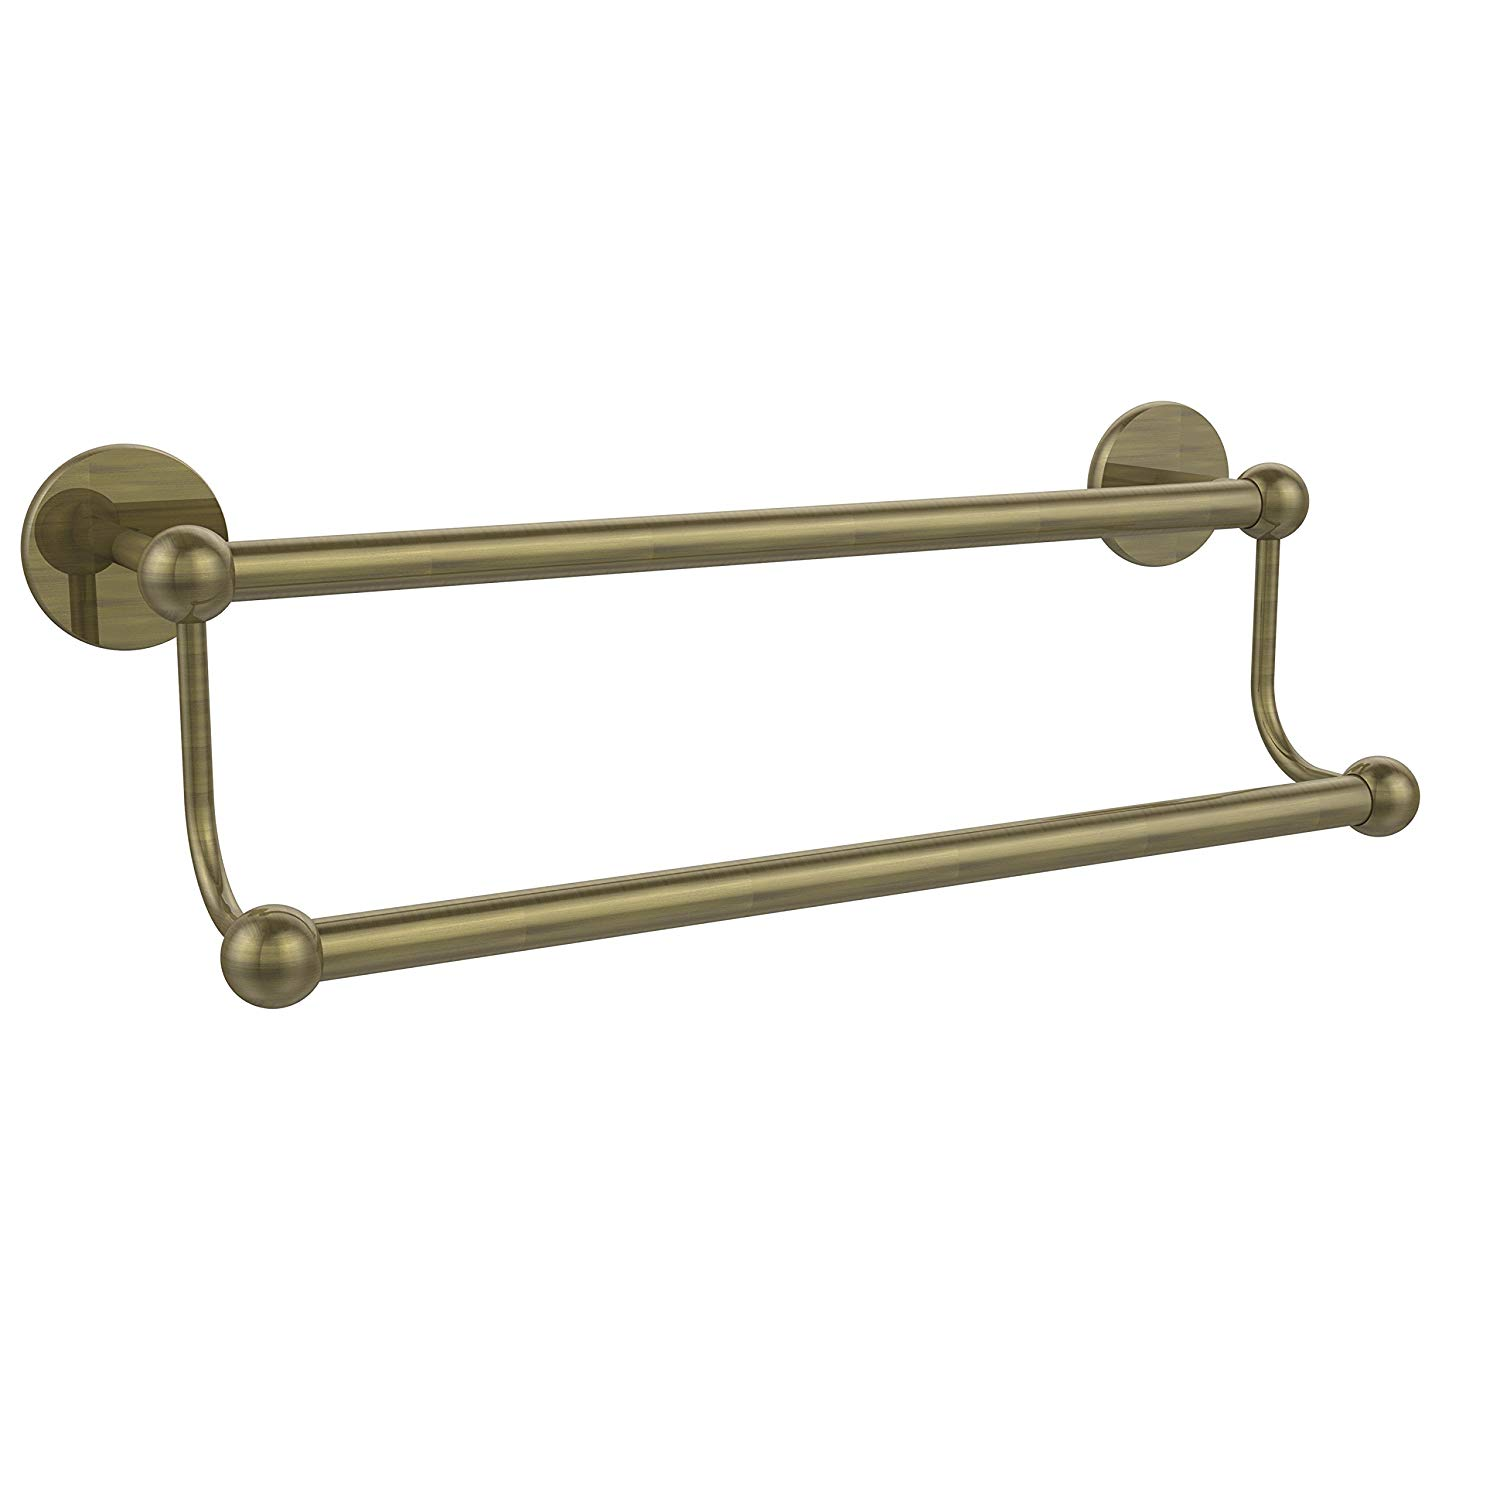 "Allied Brass 18"" Double Towel Bar Antique Brass"